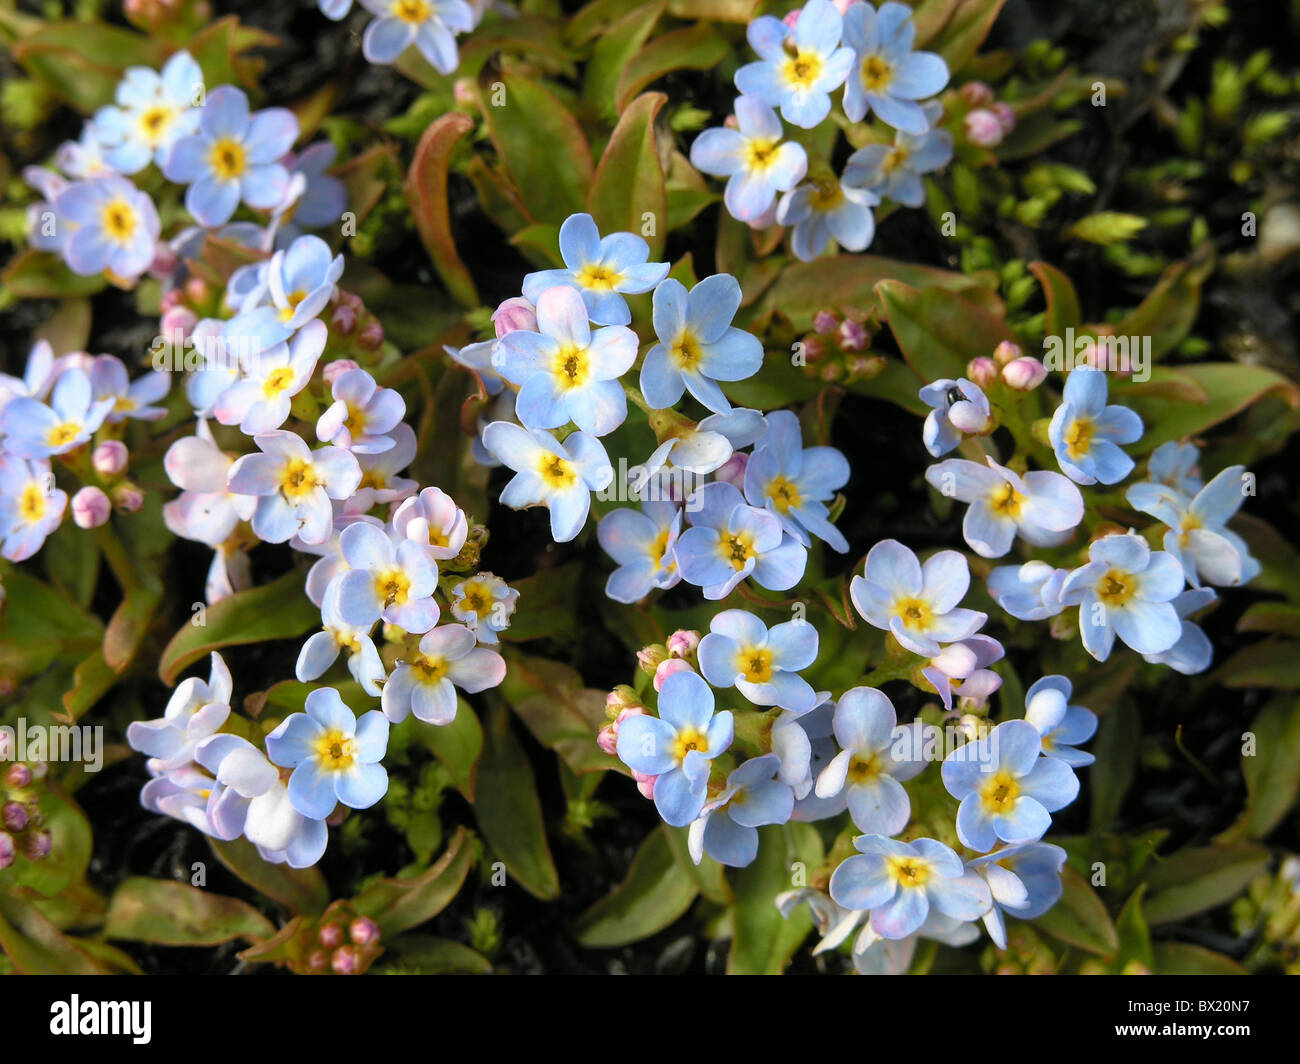 blossom blossoms botany flowers Lake of Constance forget-me-not Myosotis rehsteineri Wartmann plant red list - Stock Image